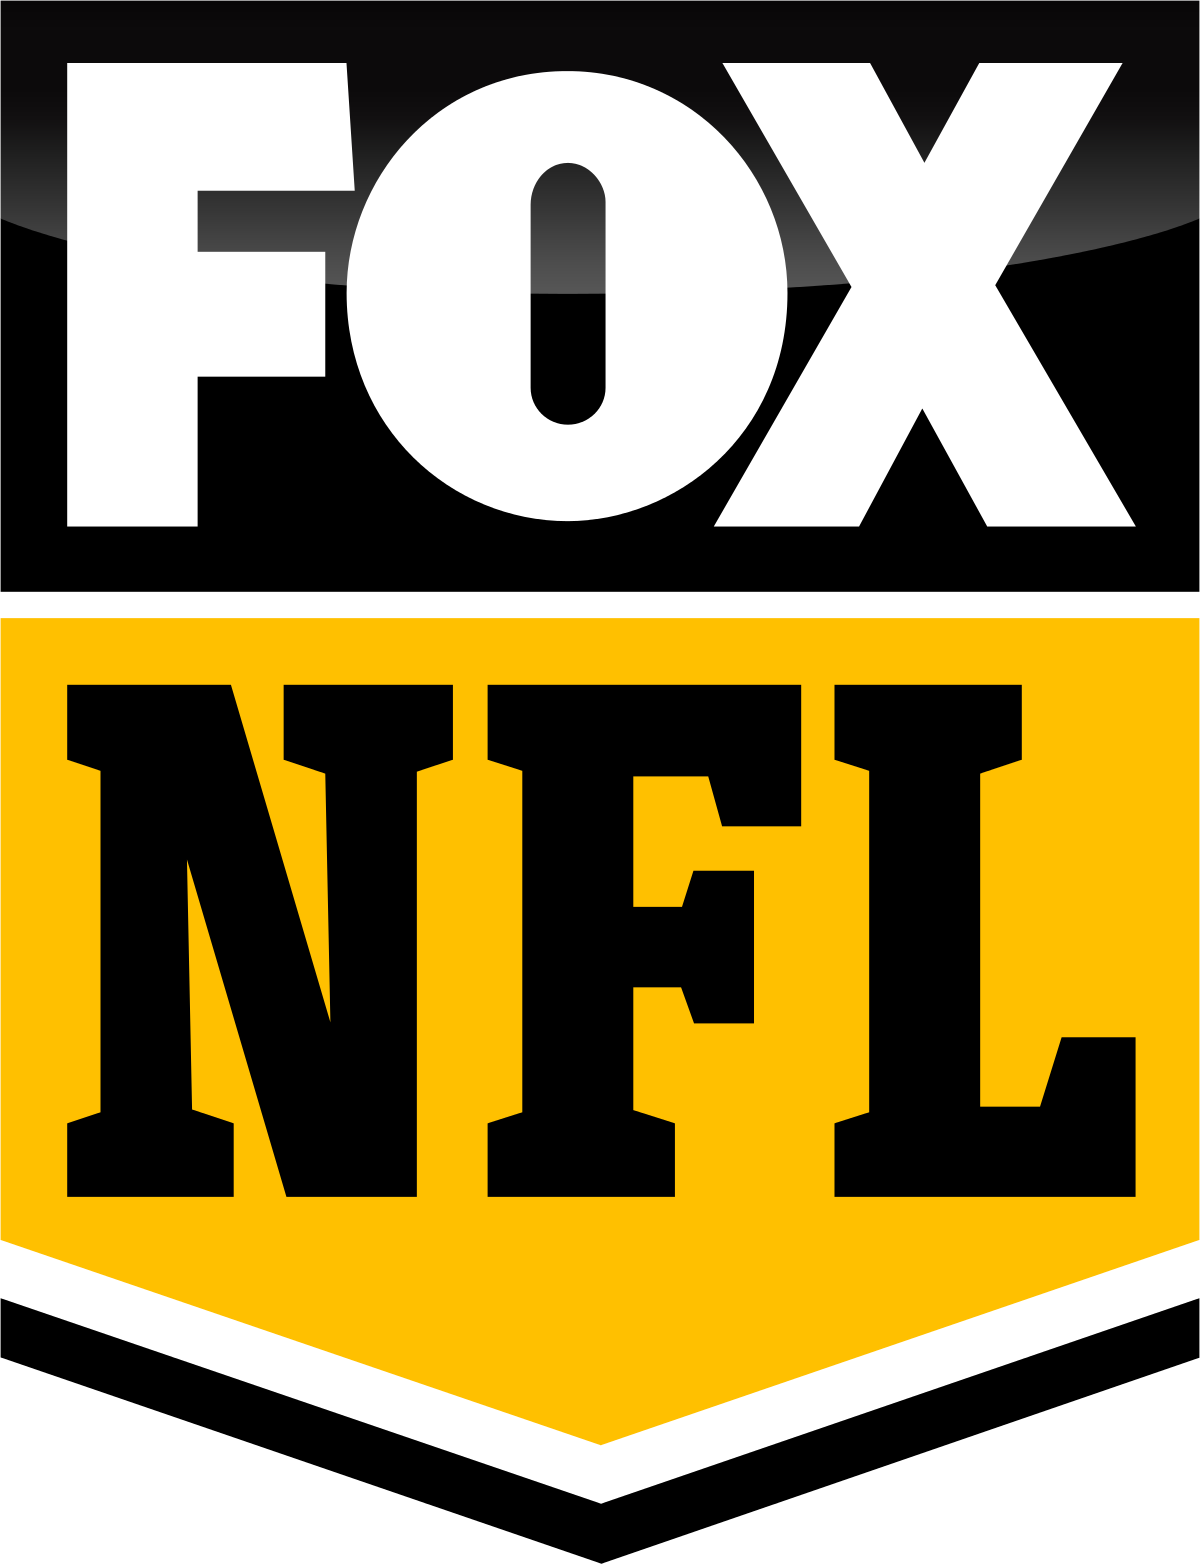 Fox nfl wikipedia . Sunday ticket logo png picture library